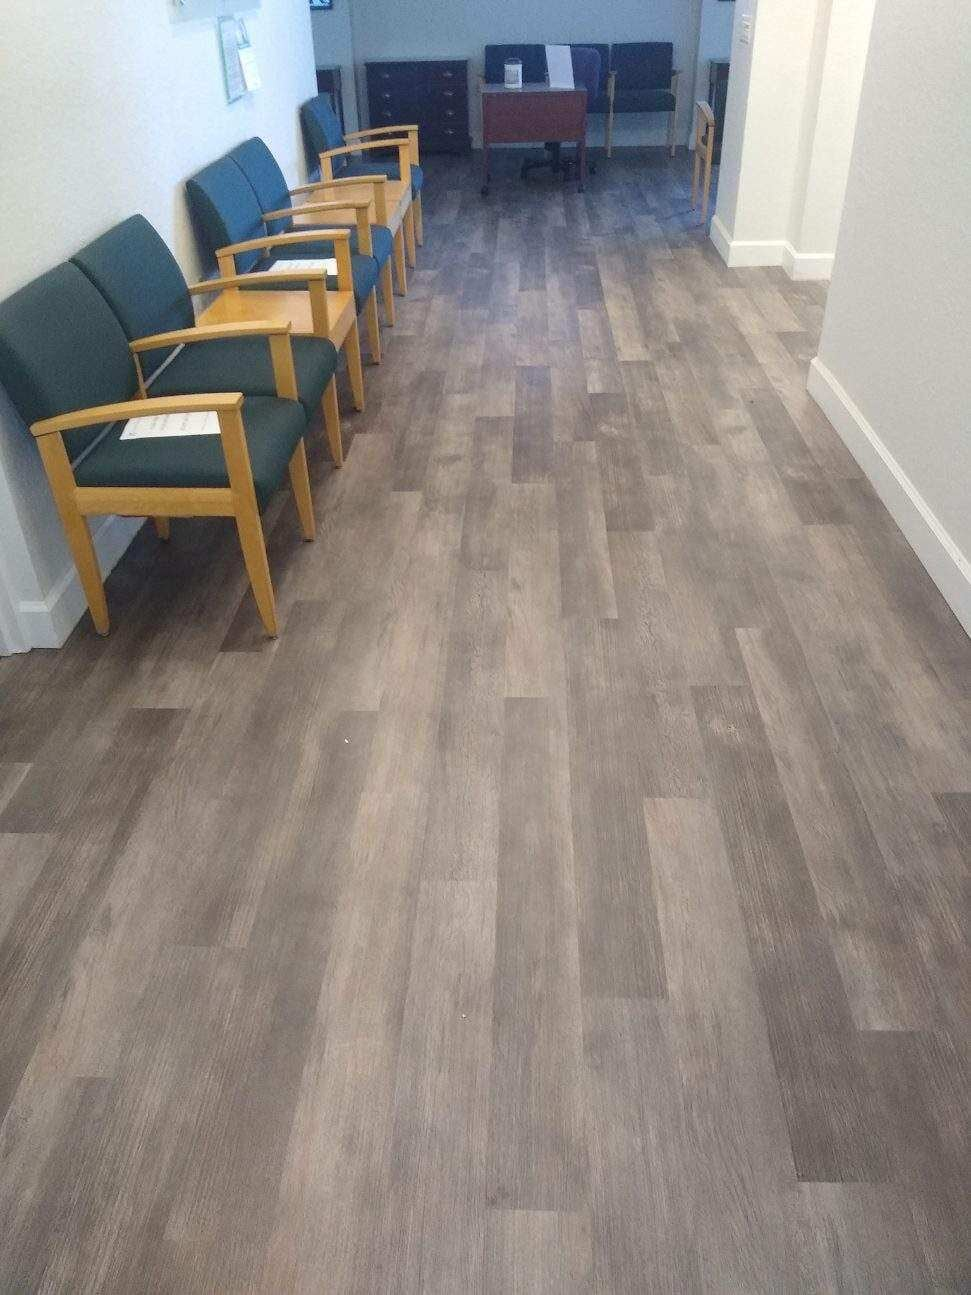 Office flooring installation in Bradenton, FL from Paradise Floors and More